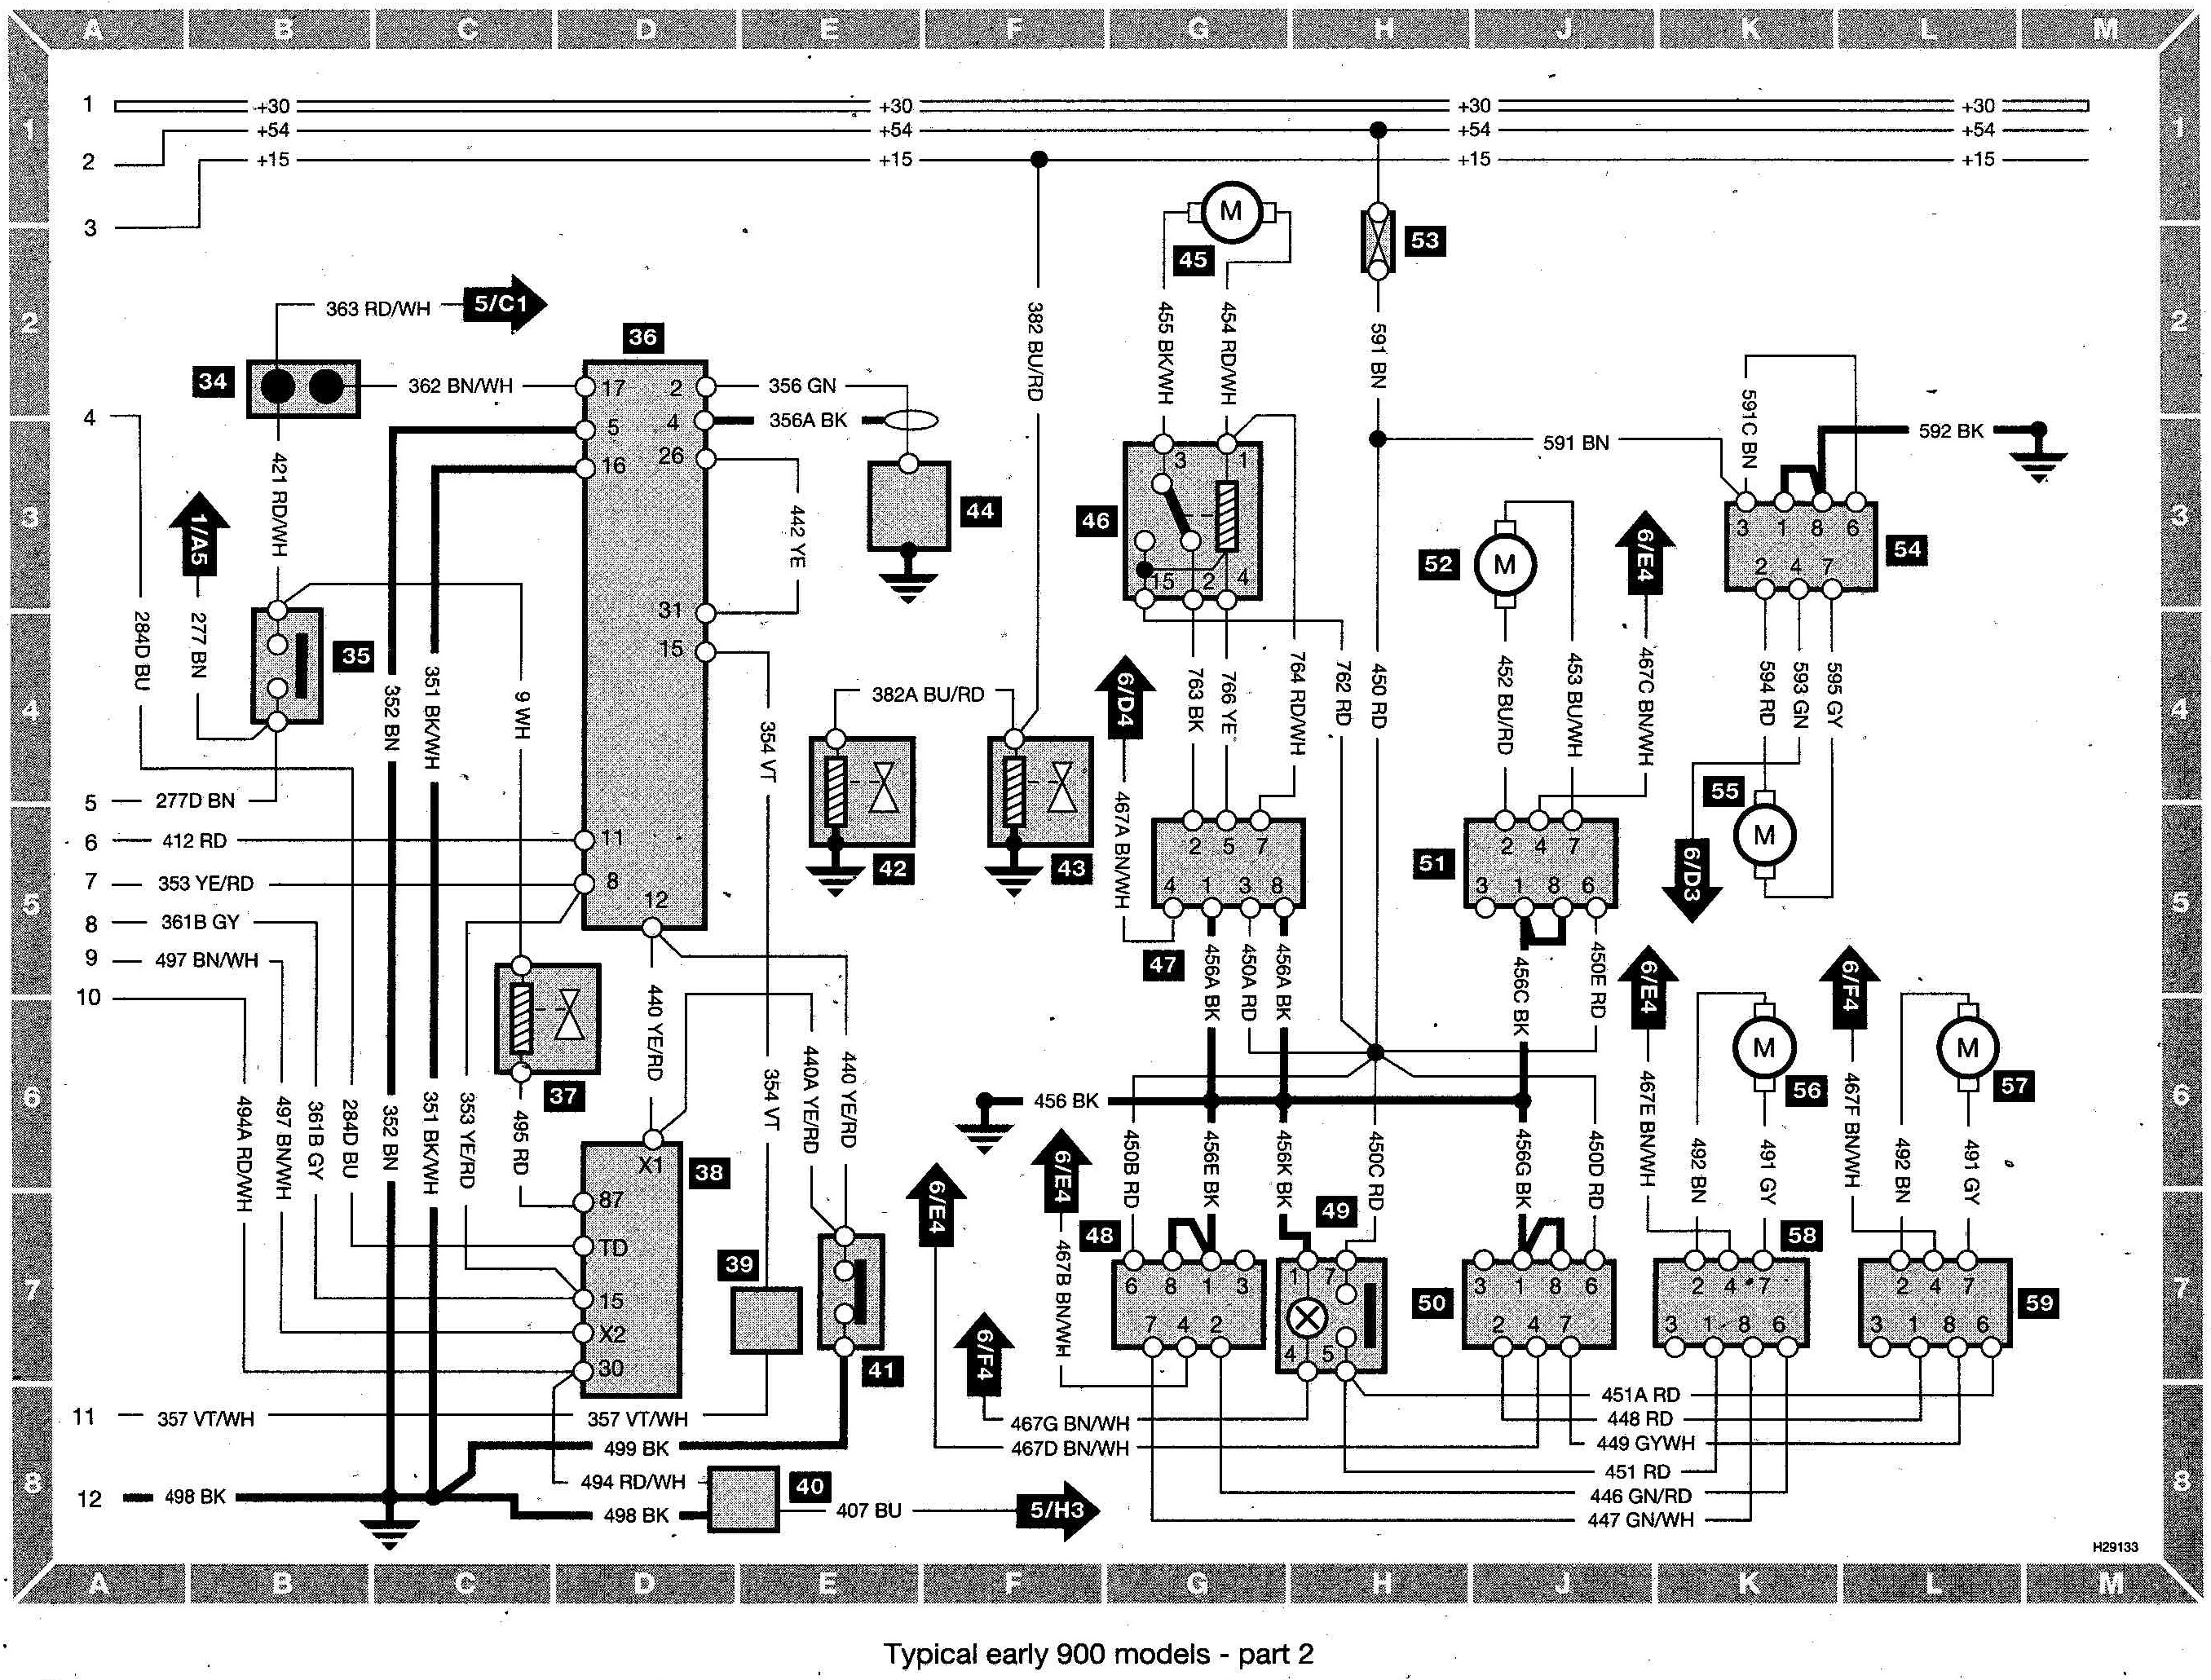 ac wiring diagram for 2004 buick rainier wiring diagram fuse box u2022 rh friendsoffido co